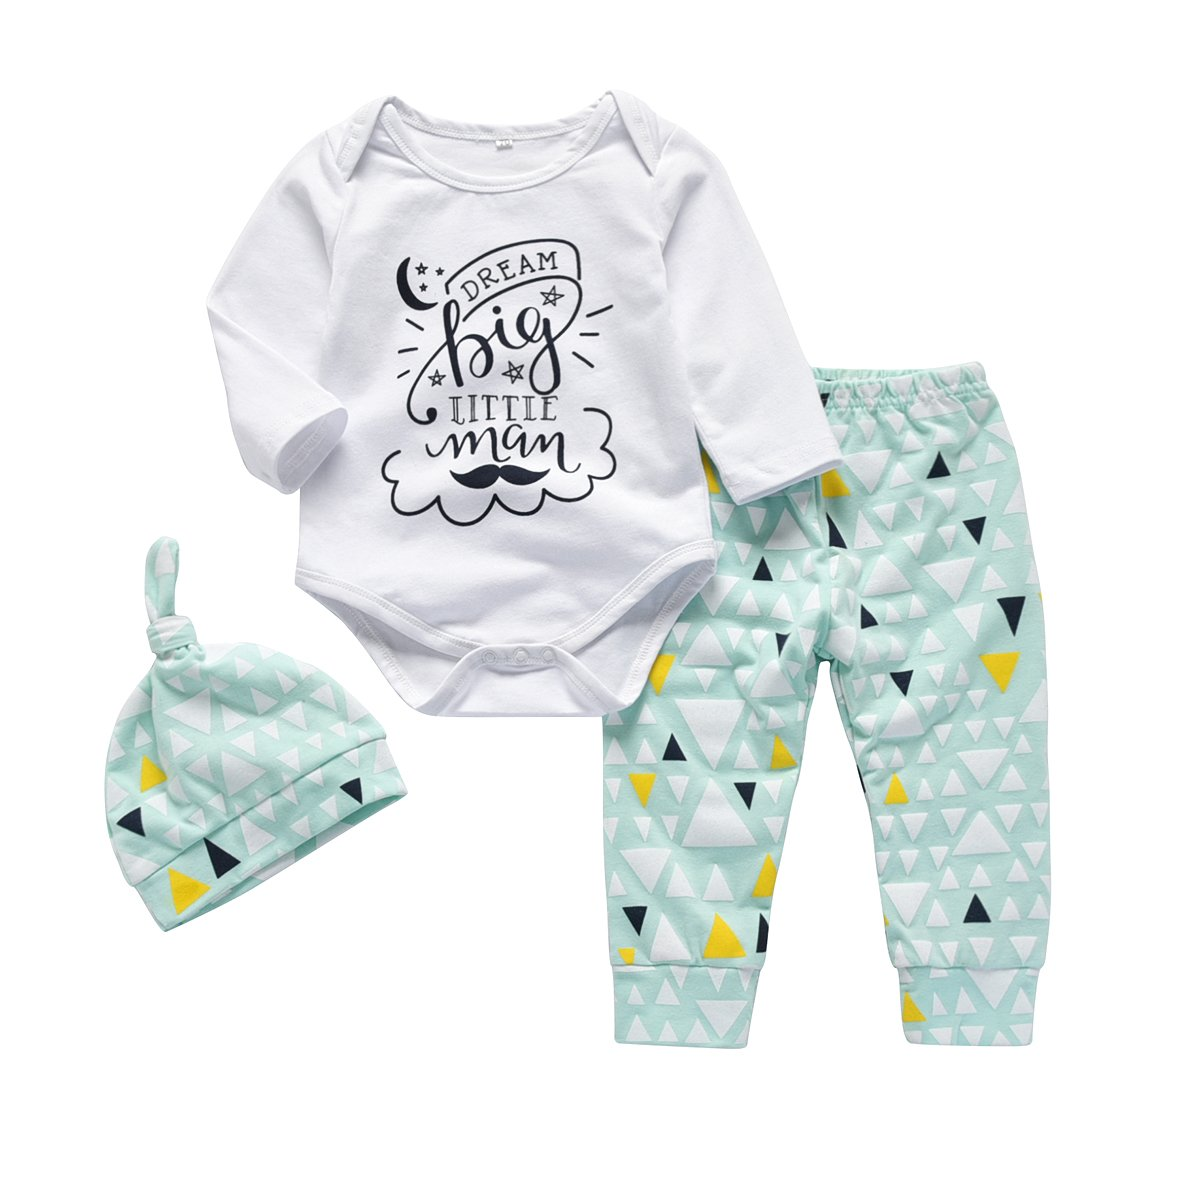 Newborn Infant Baby Boy Clothes Funny Letter Print Romper Outfit Set with Geometric Pants and Hat (0-6 Months)